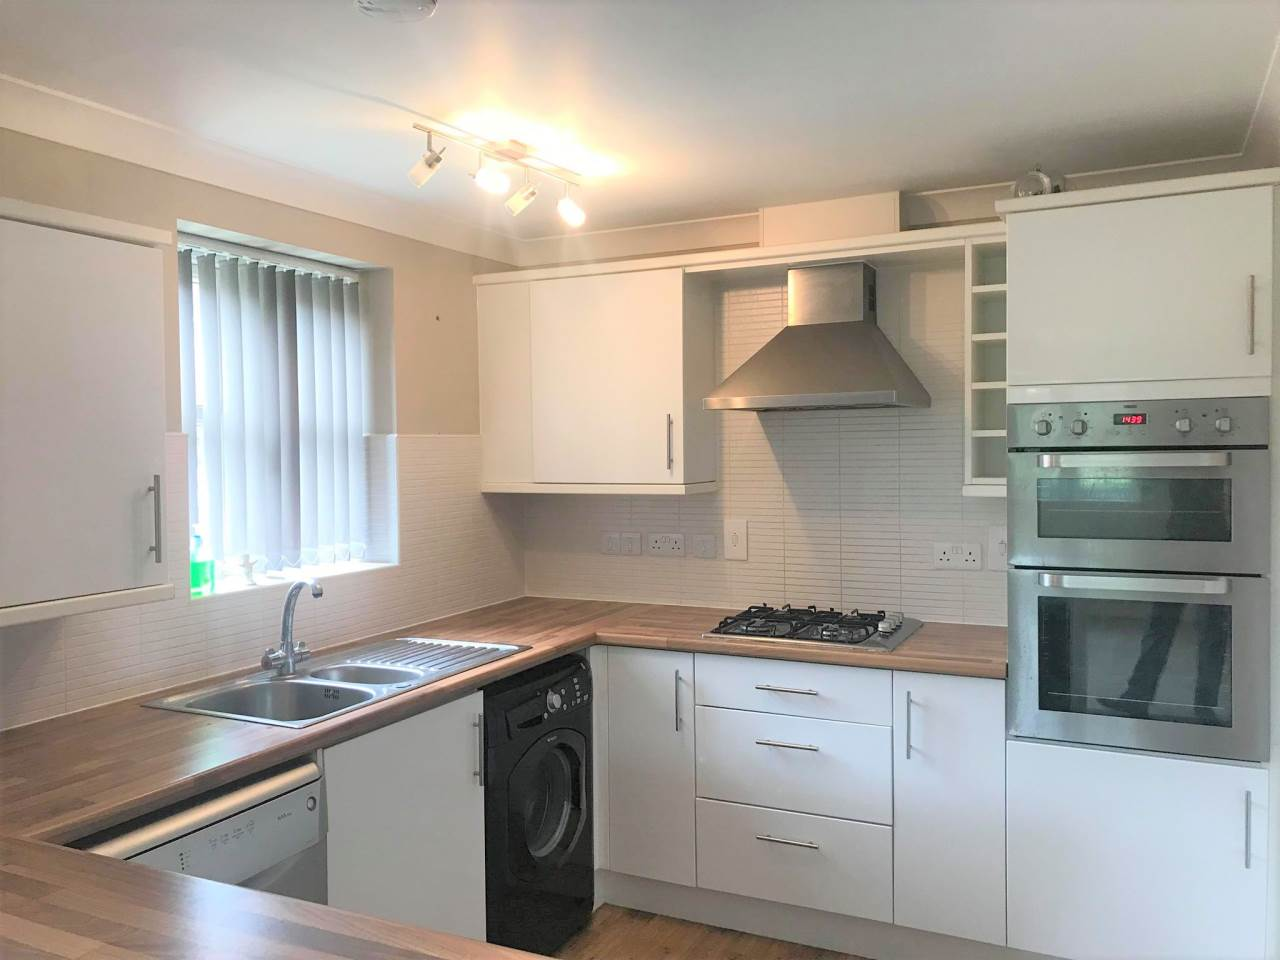 1 bed house to rent in Haverhill, CB9